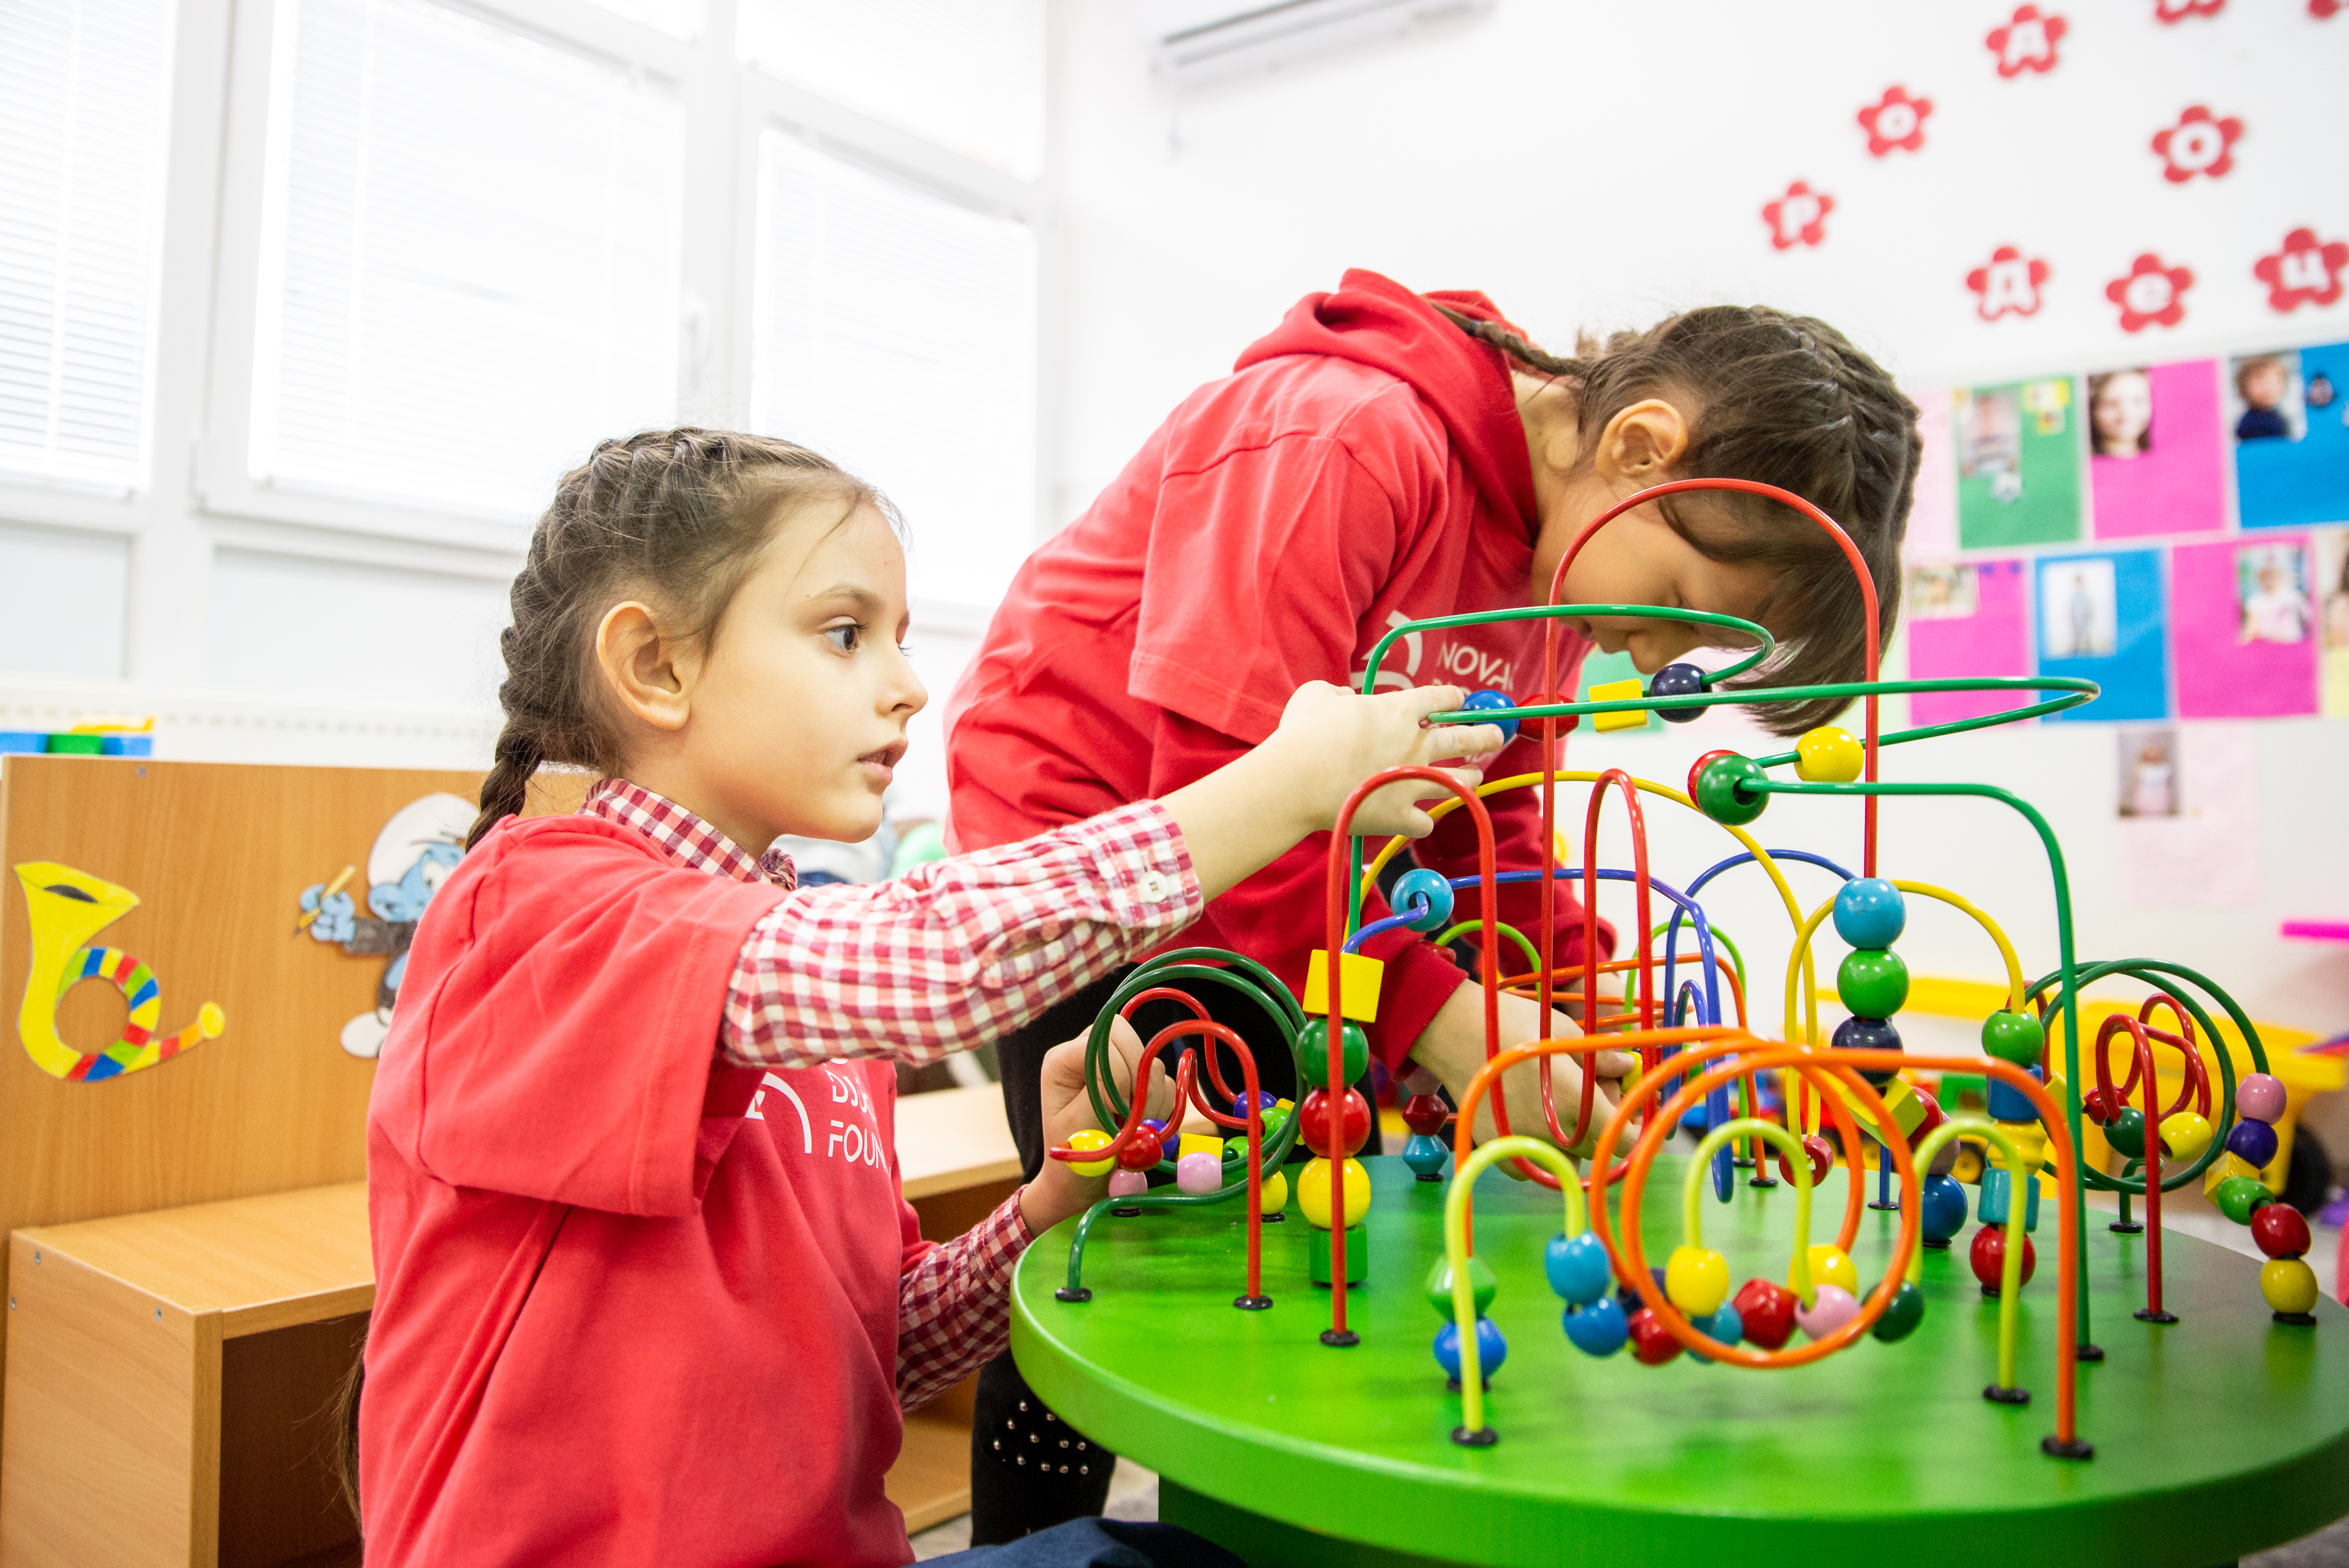 Every other child in Serbia does not have access to preschool.